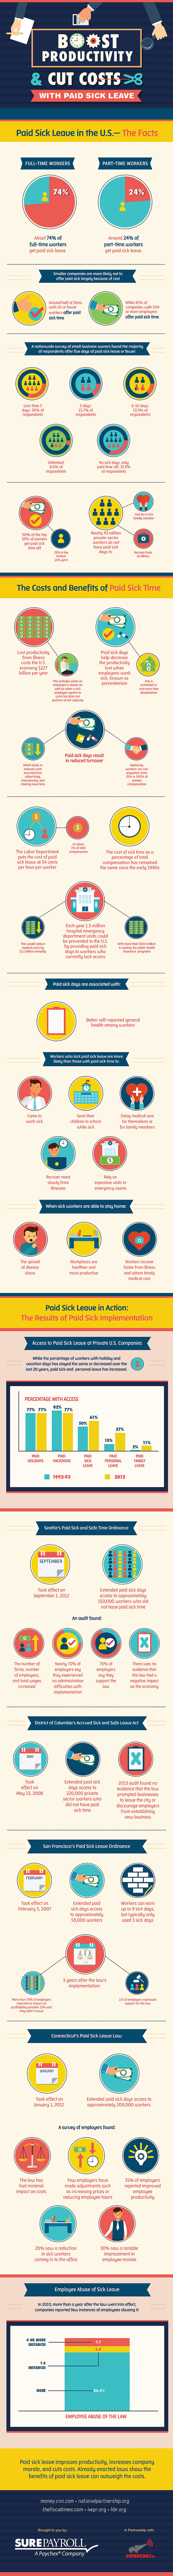 Infographic about paid sick leave